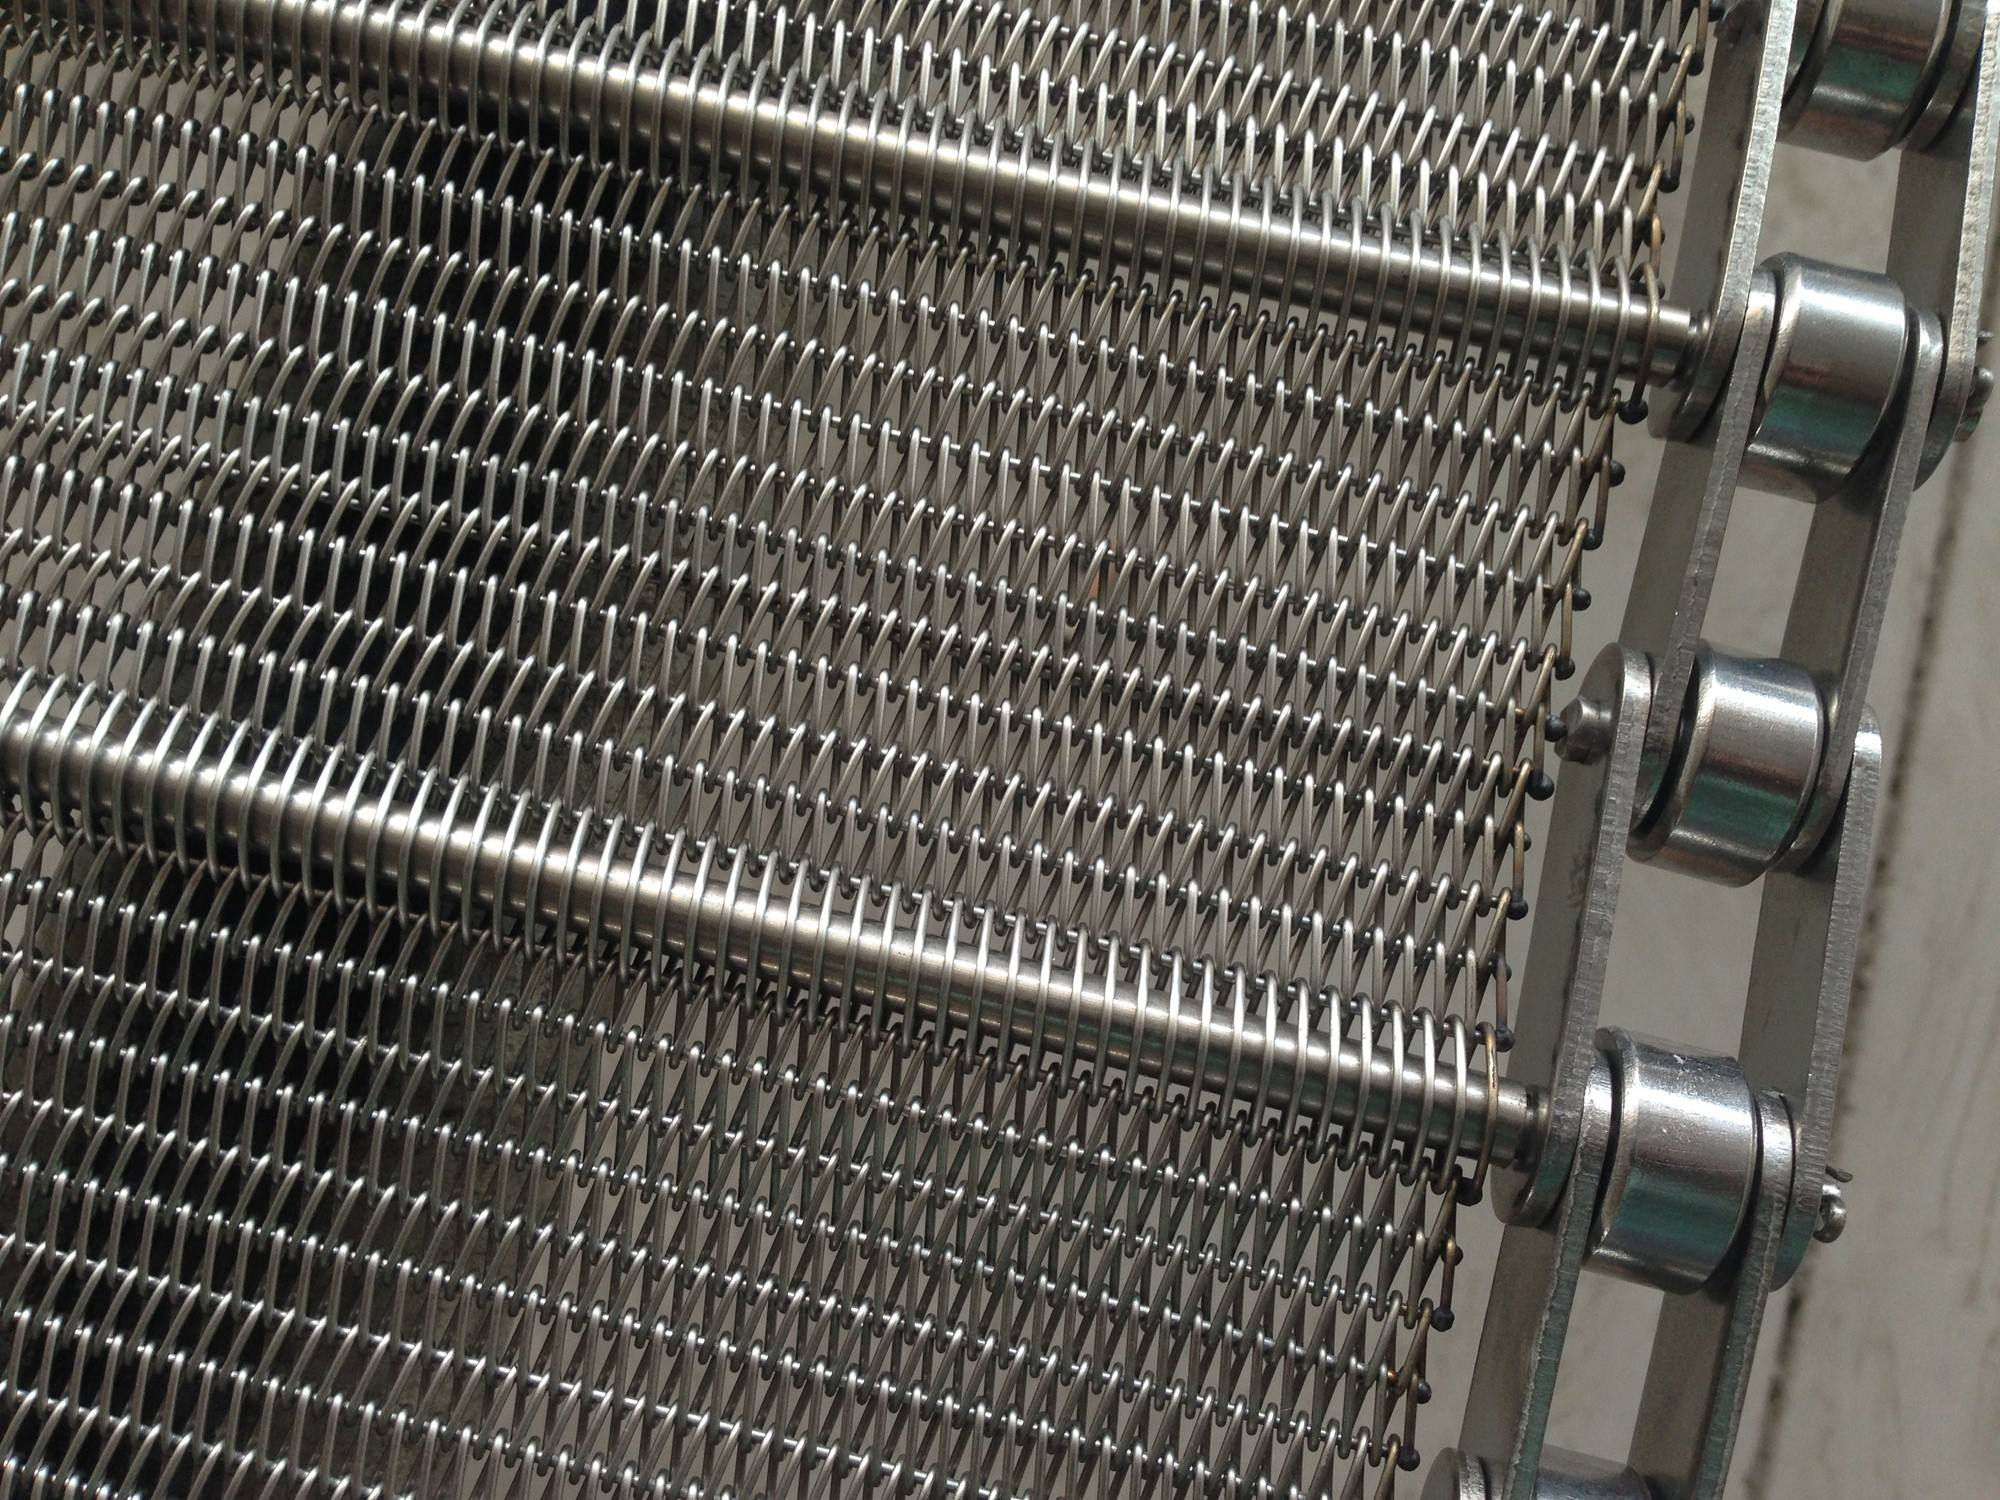 Specification and environmental requirements for stainless steel conveyor belts